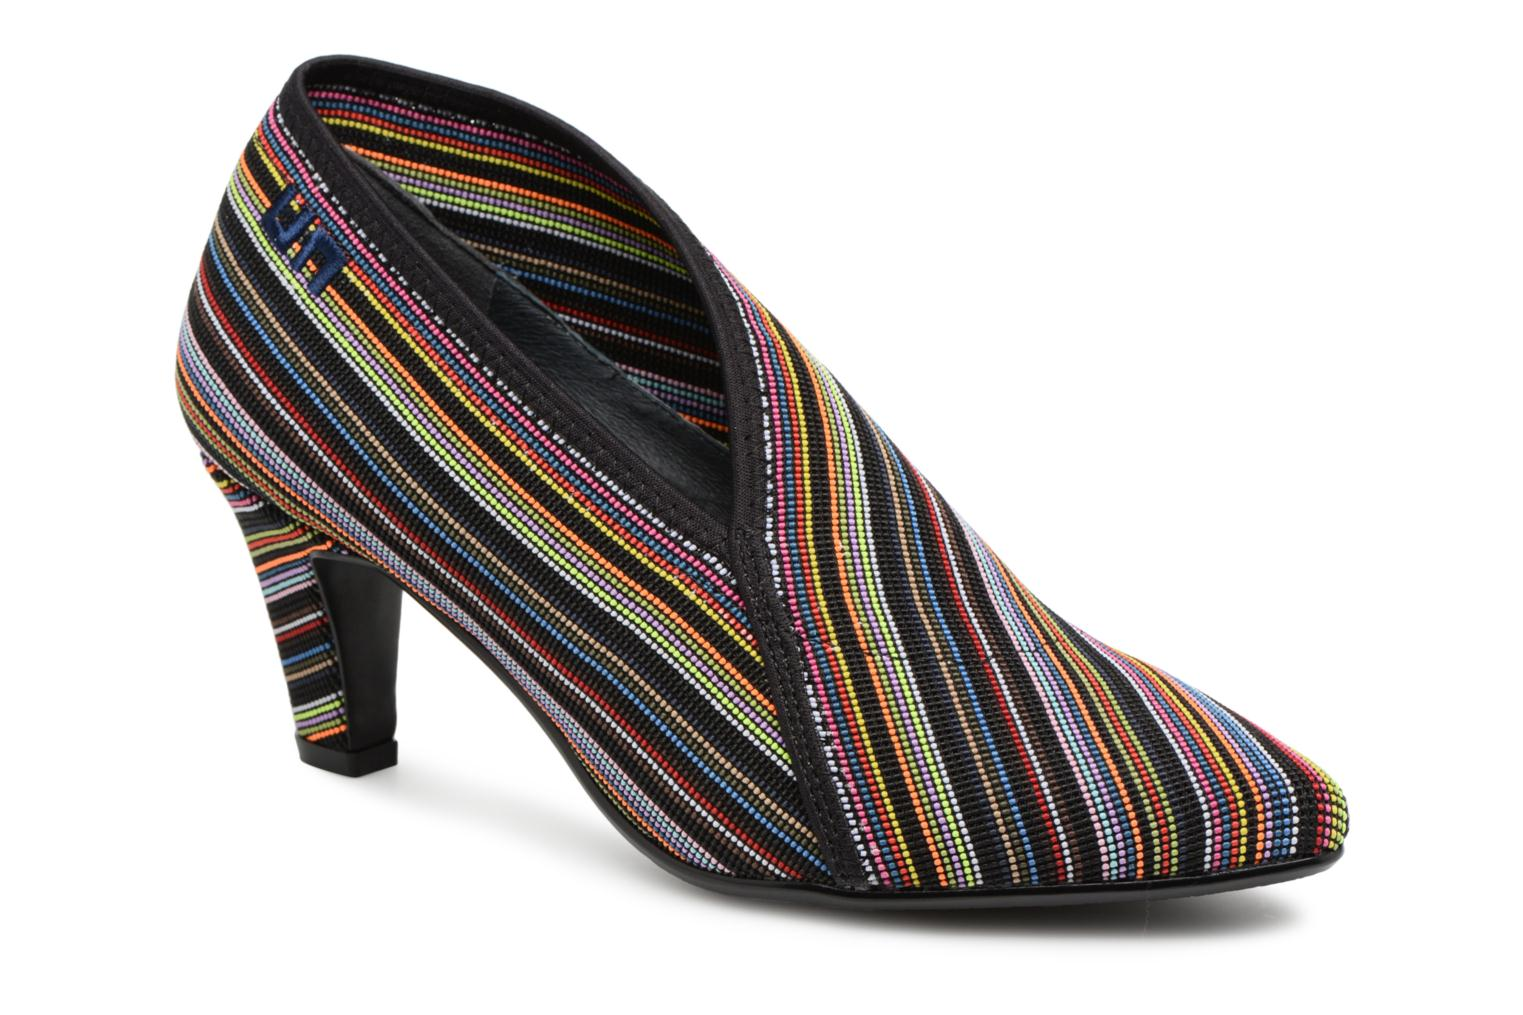 Marques Chaussure femme United Nude femme Fold Lite Mid Bright Mix